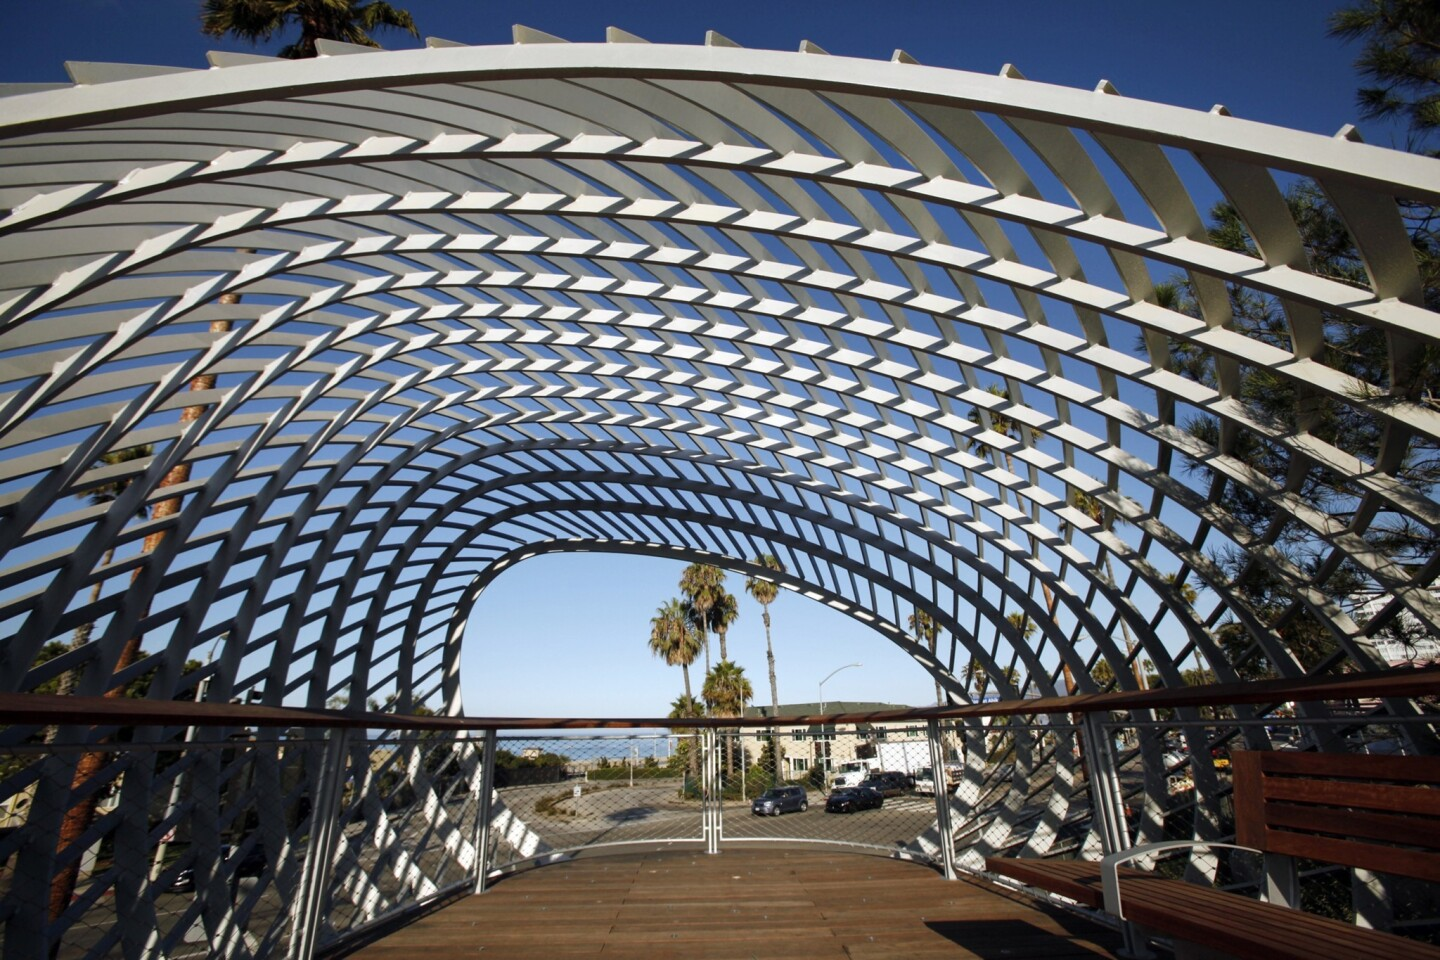 A sculptural form, resembling both curling wave and woven basket, envelops a viewing platform in Santa Monica's new Tongva Park, across Main Street from City Hall and near the coming terminus of the Expo Line.